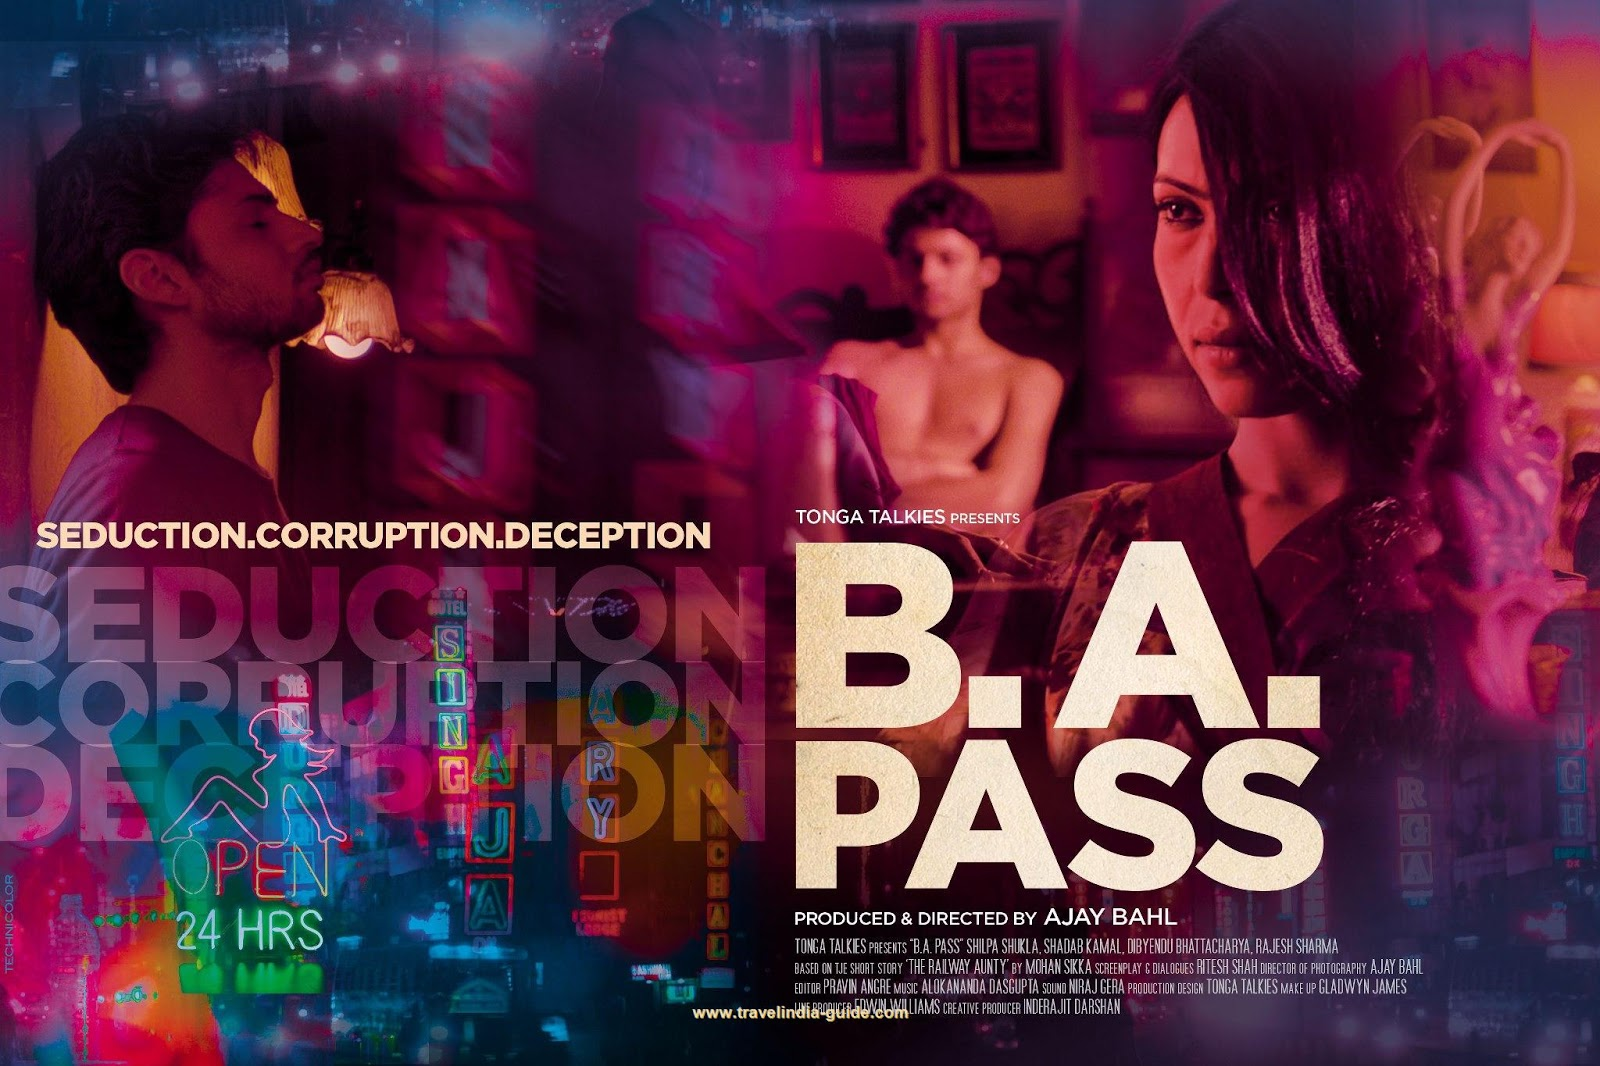 Watch B.A. Pass 2013 Hindi Movie Trailer, movie review Online from YouTube new release bollywood movies channel